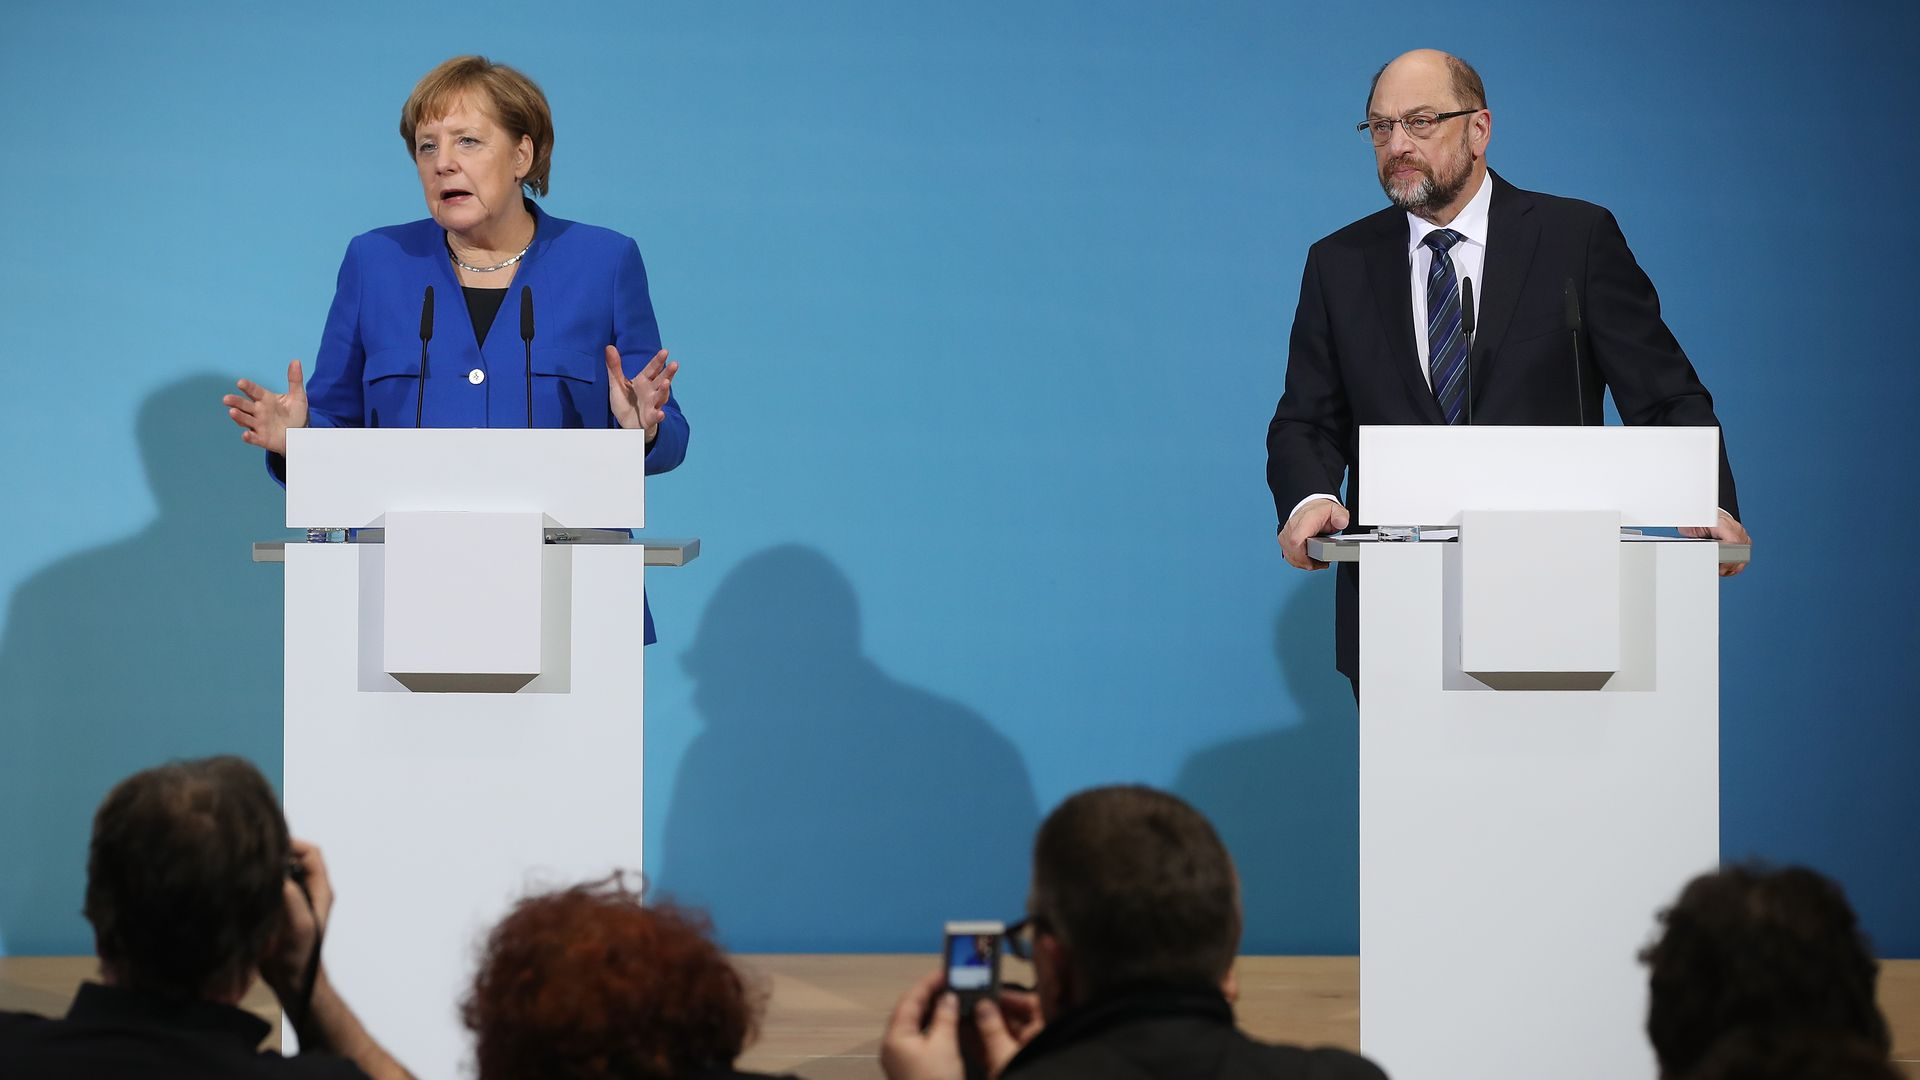 Angela Merkel and Martin Schultz speak at podiums